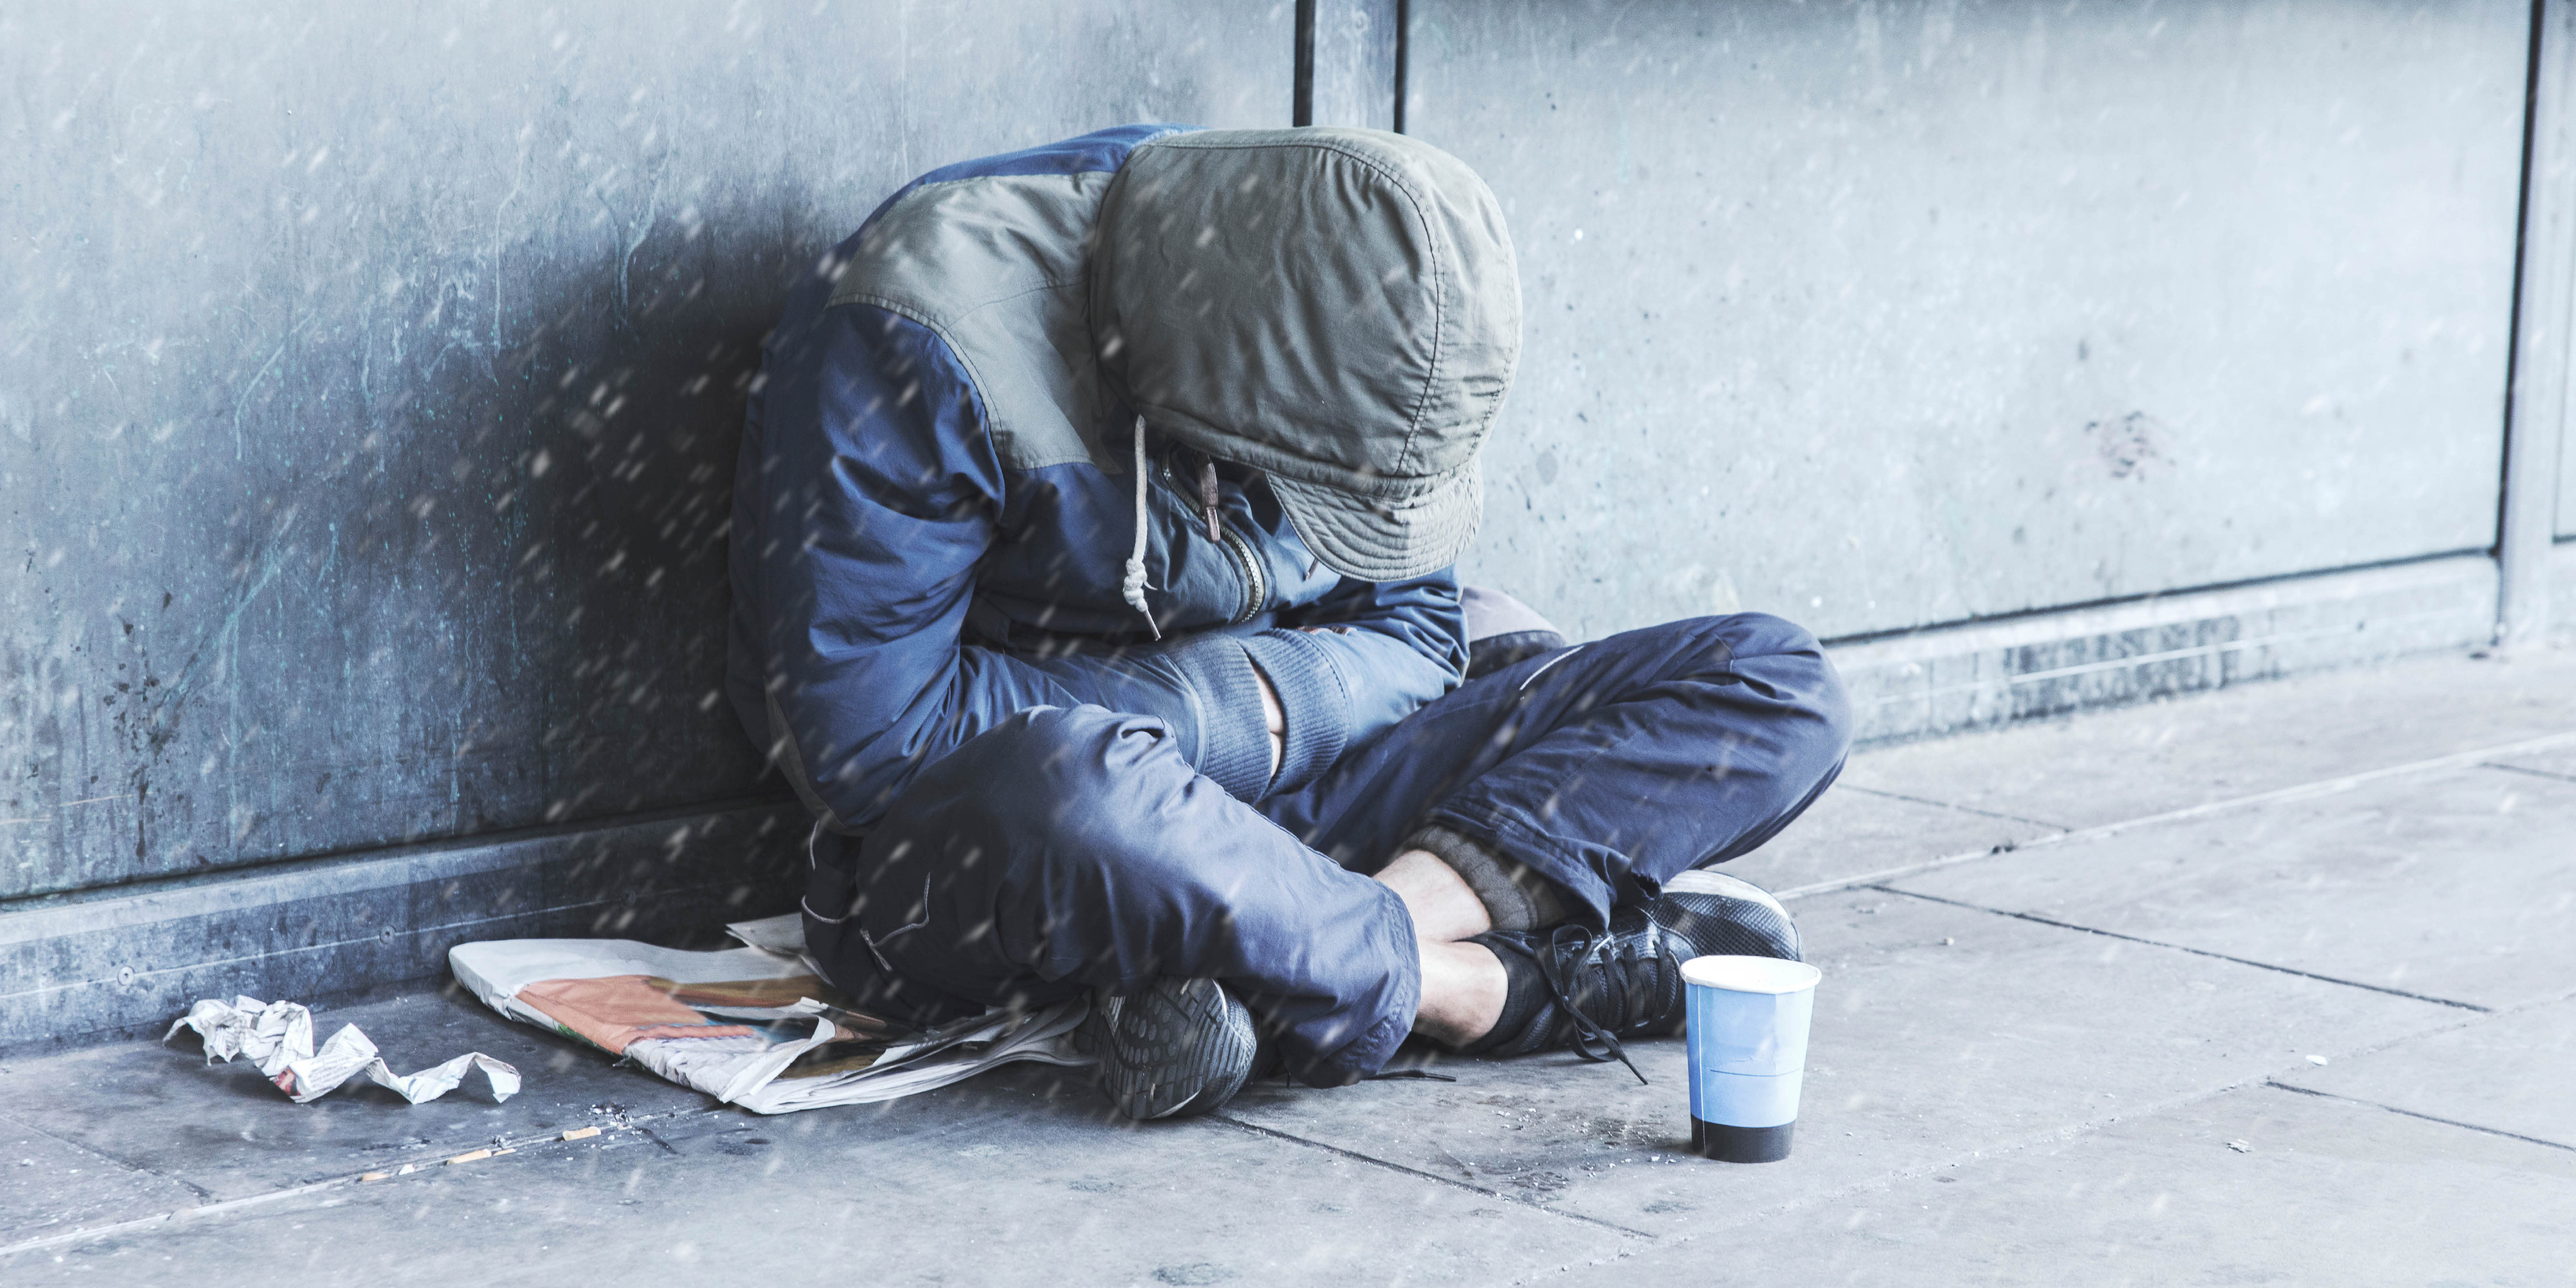 Alabare charity how to help homeless rough sleepers